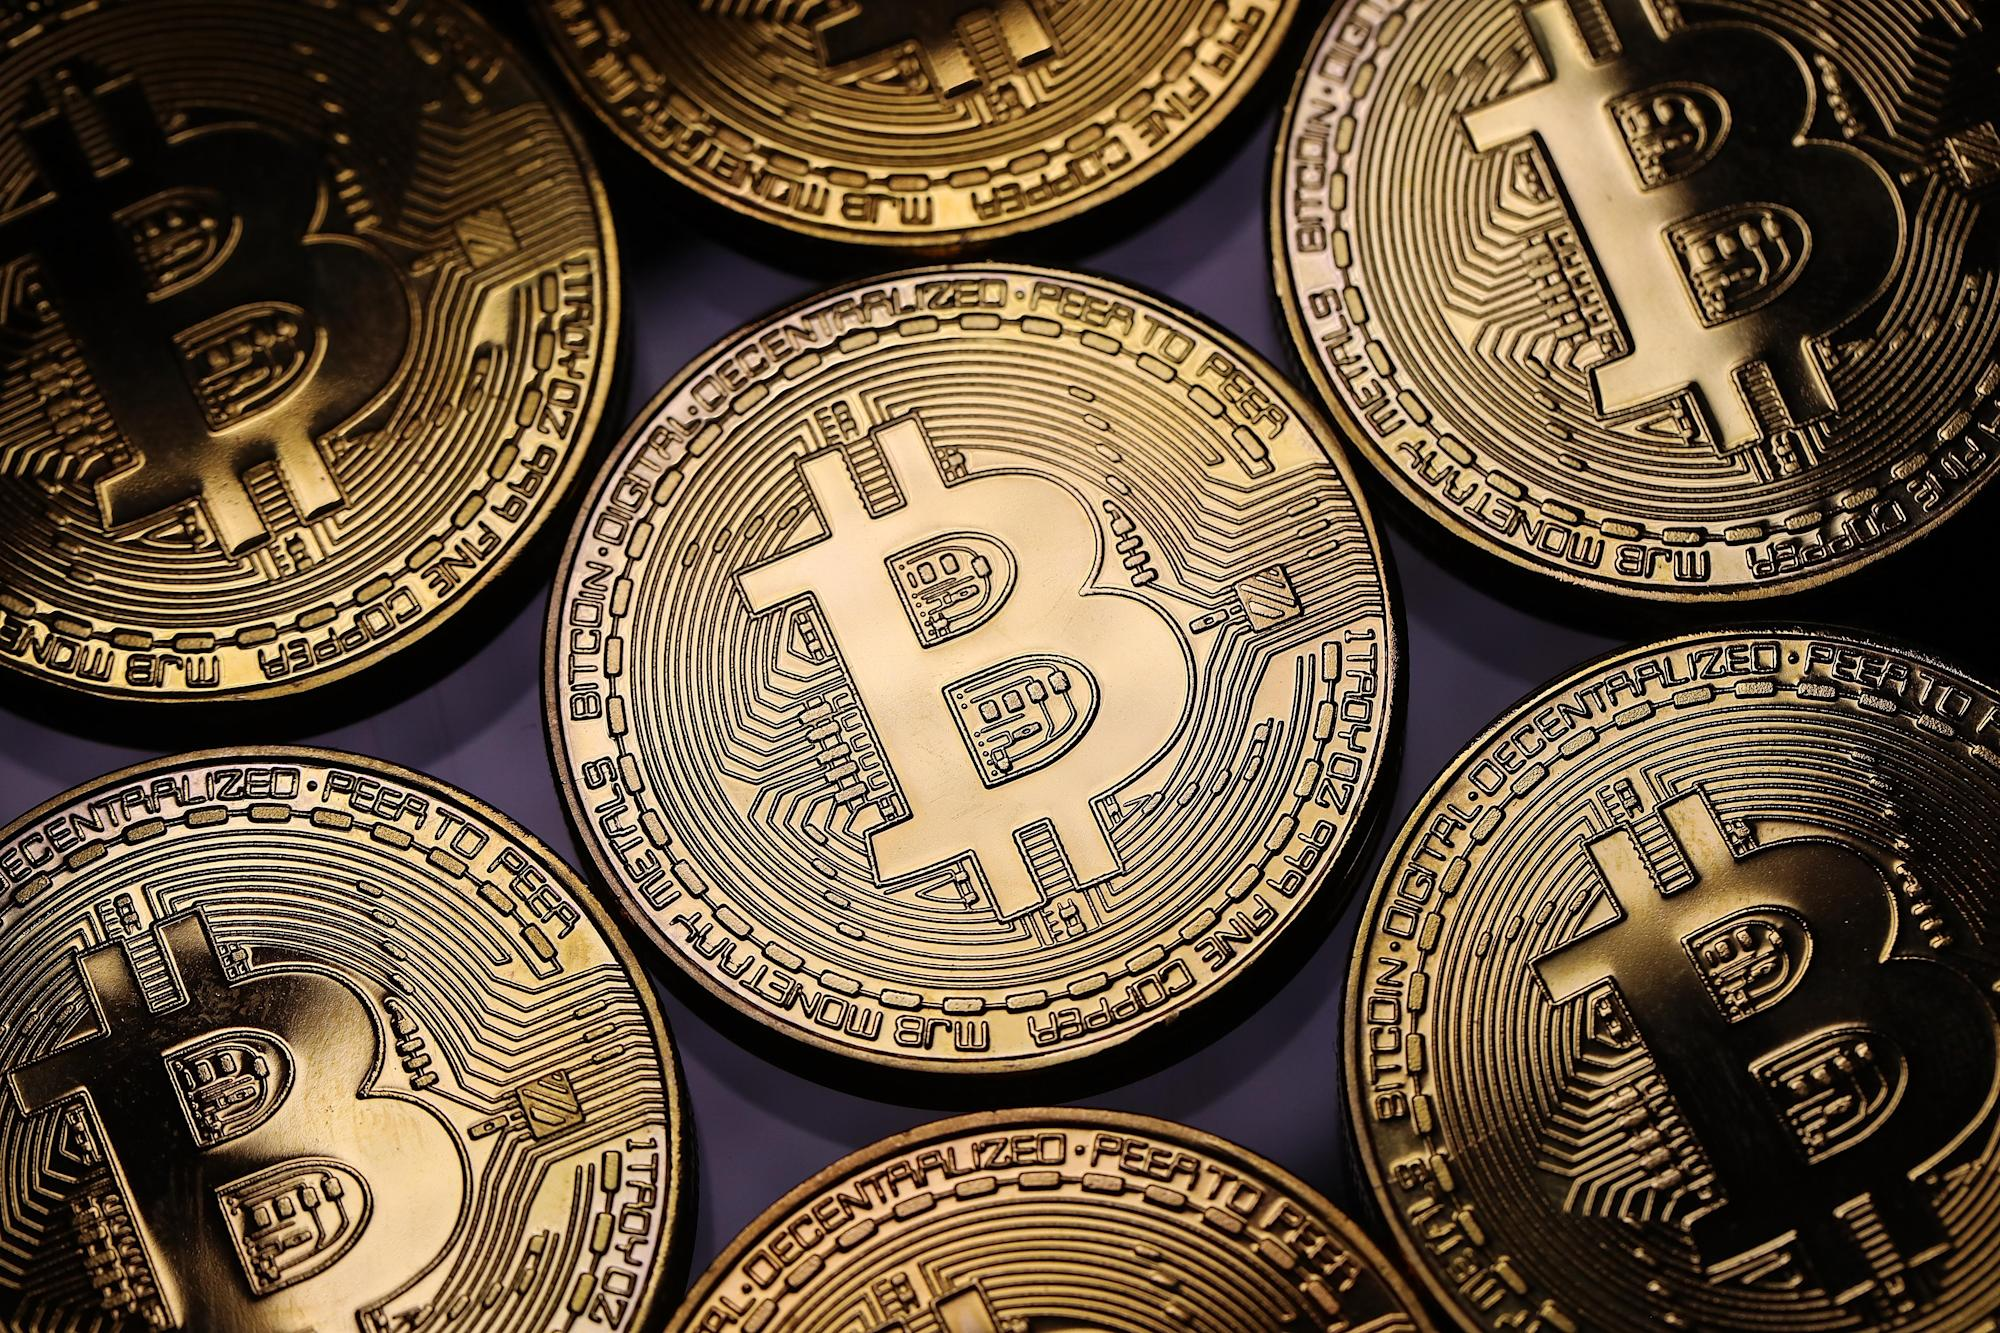 Daily Crunch: Jack Dorsey and Jay Z invest in bitcoin development